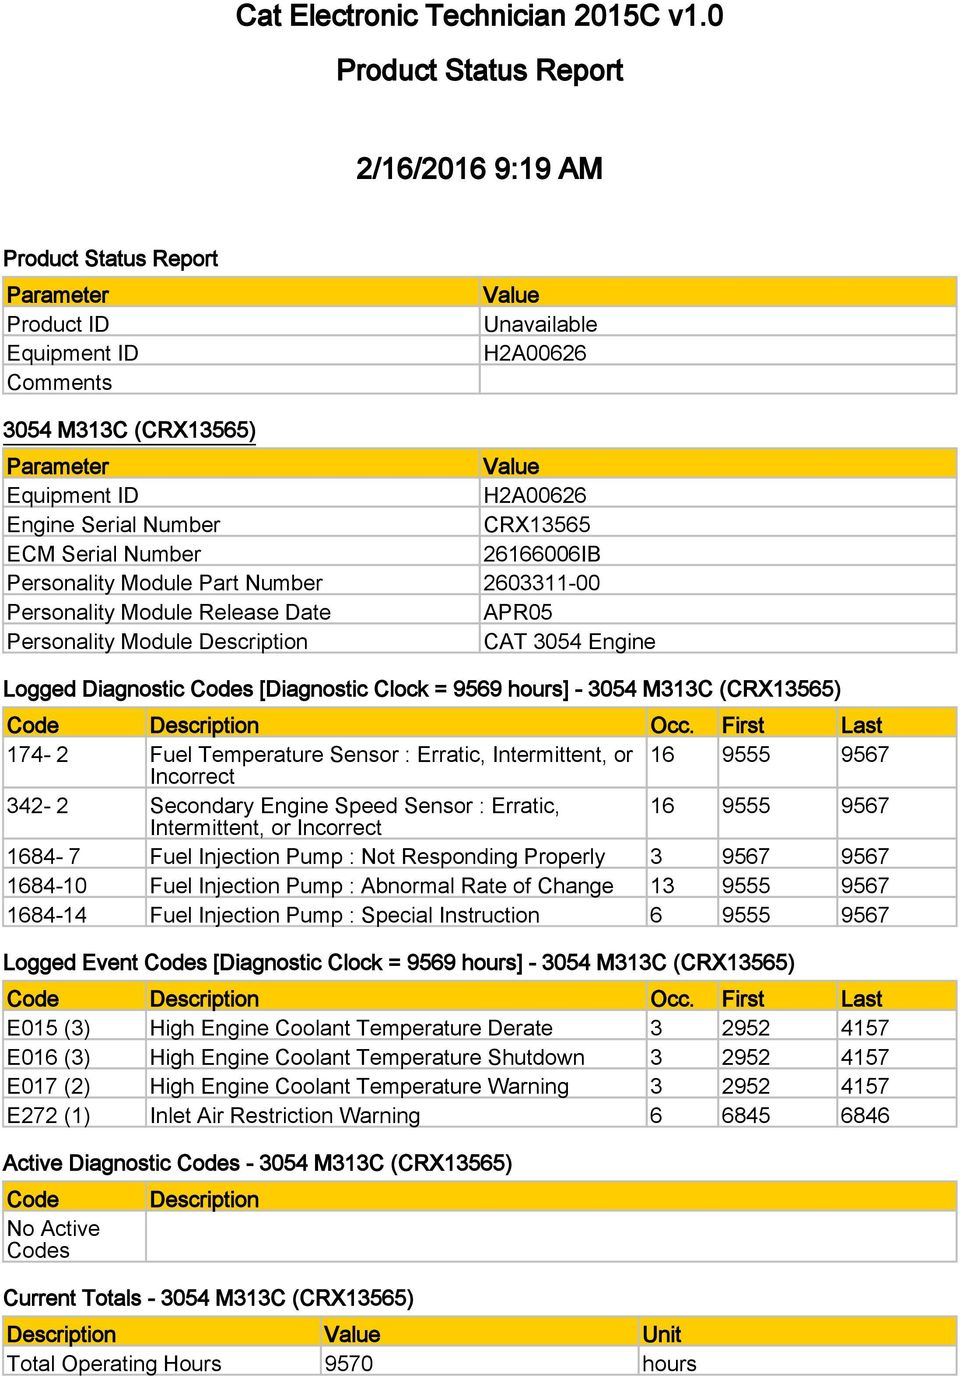 Cat Electronic Technician 2015c V10 Product Status Report 2 16 2016 Telehandler Wiring Diagrams Part Number 2603311 00 Personality Module Release Date Apr05 Description 3054 Engine